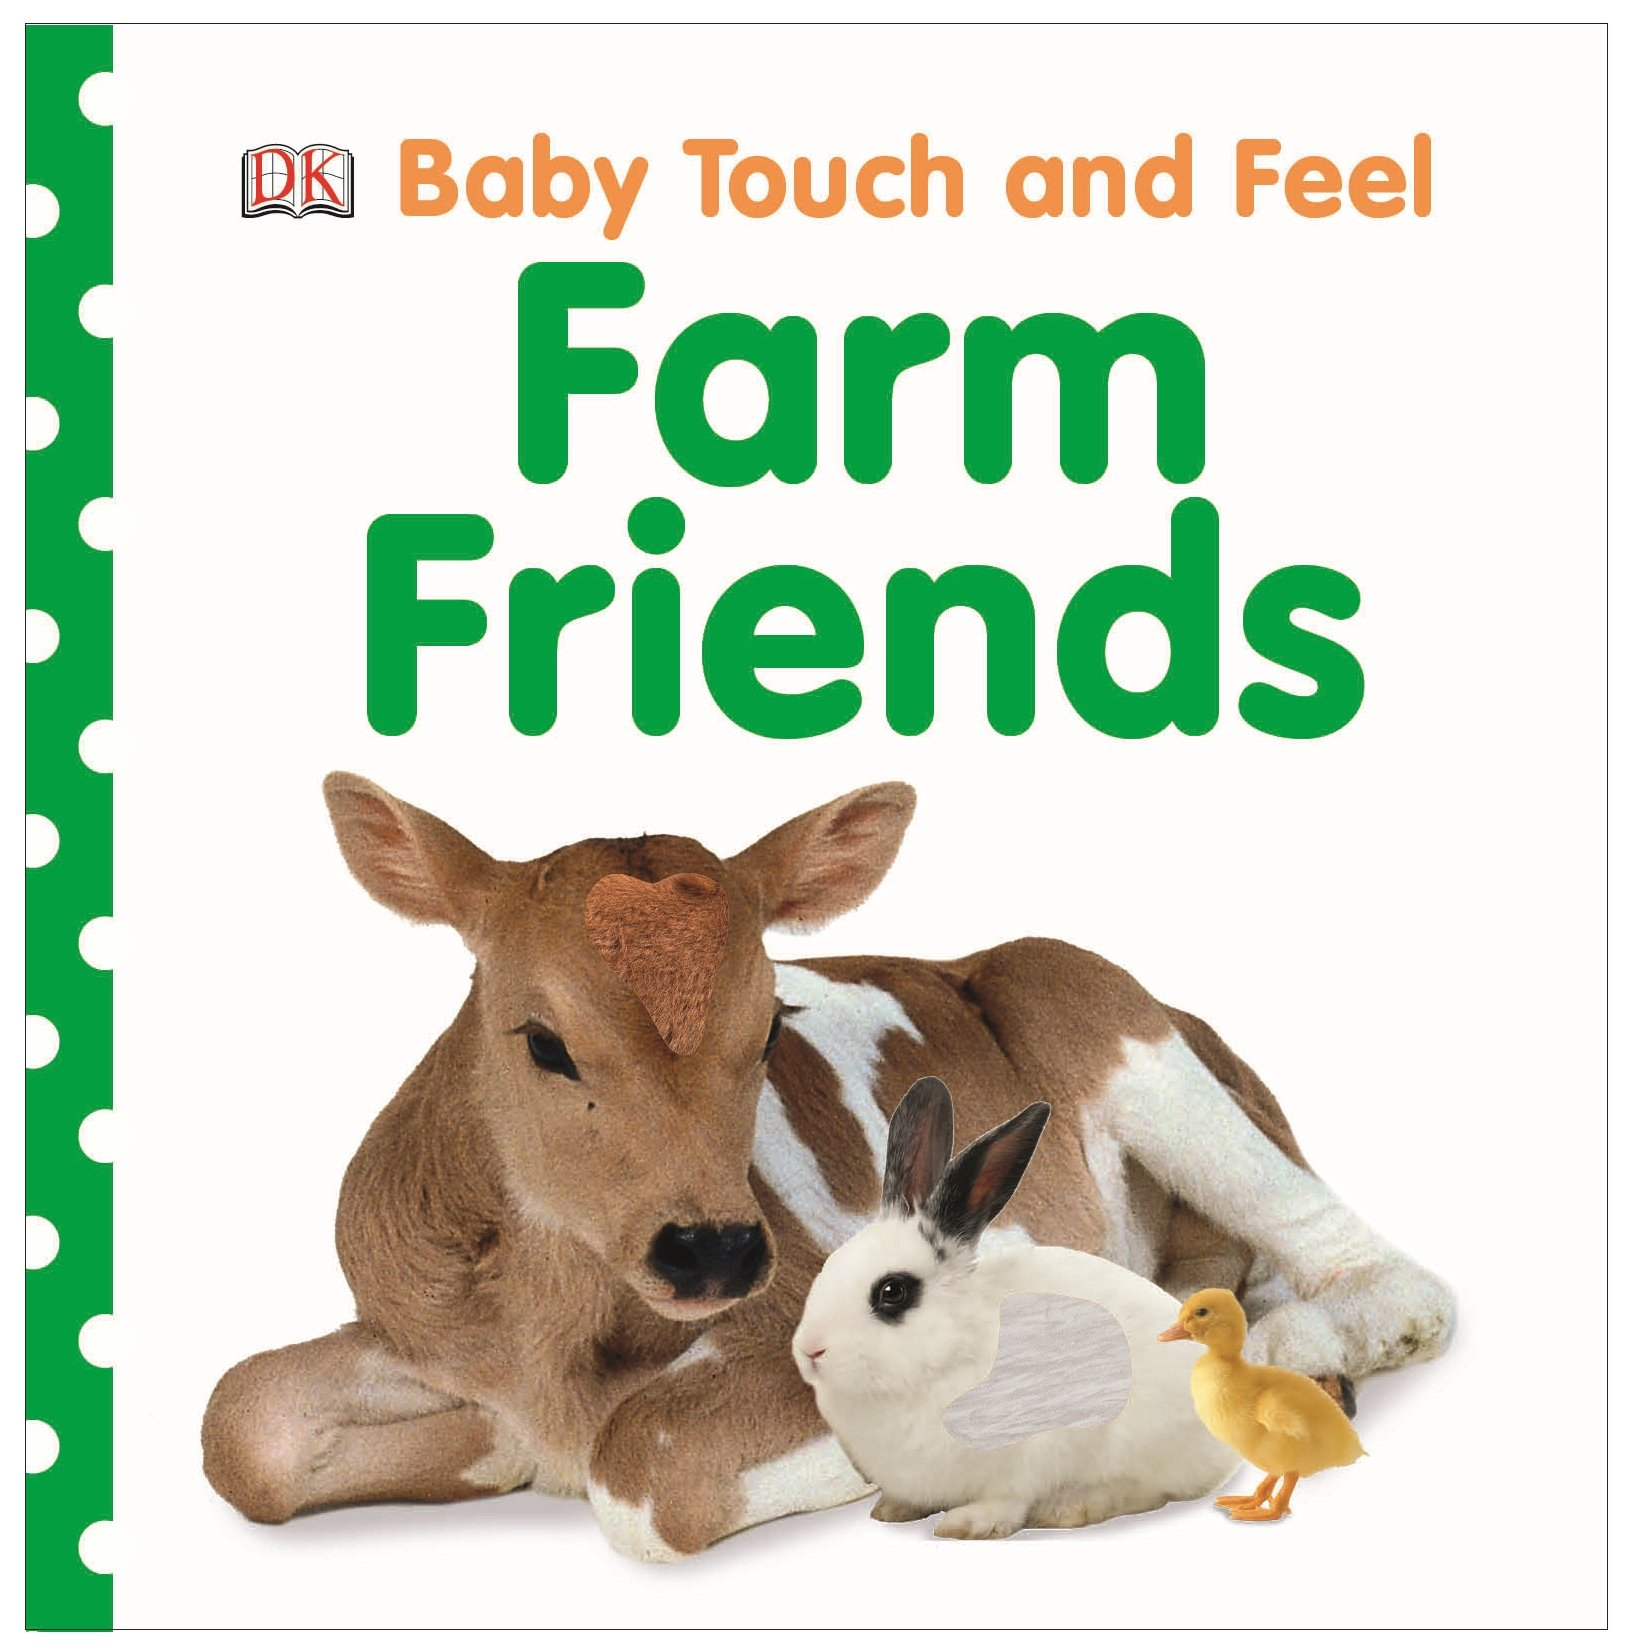 Baby Touch And Feel Farm Friends - 9781409346661,62_201739,132000,tiki.vn,Baby-Touch-And-Feel-Farm-Friends-62_201739,Baby Touch And Feel Farm Friends